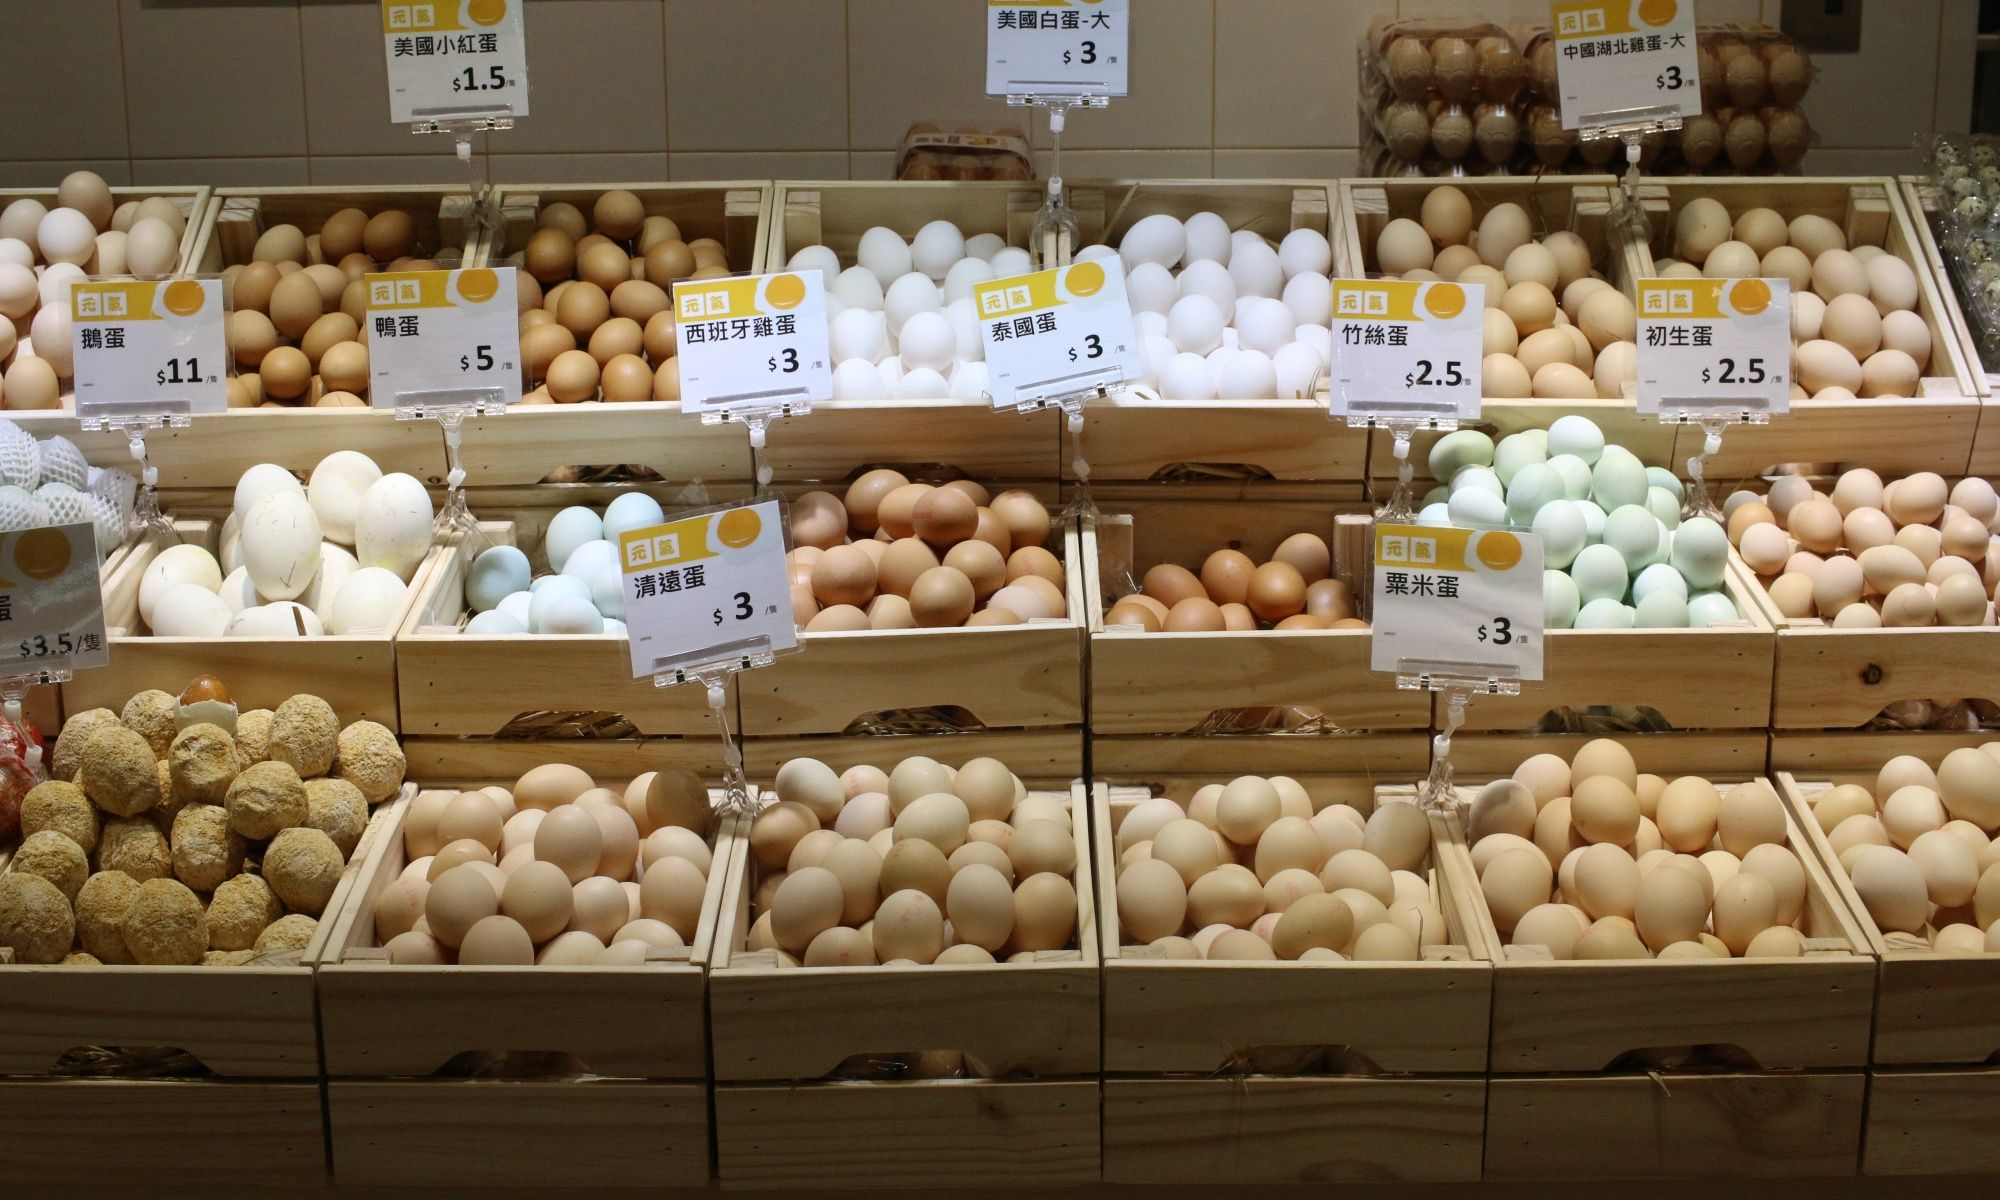 This Supermarket Has The Biggest Egg Selection in Hong Kong